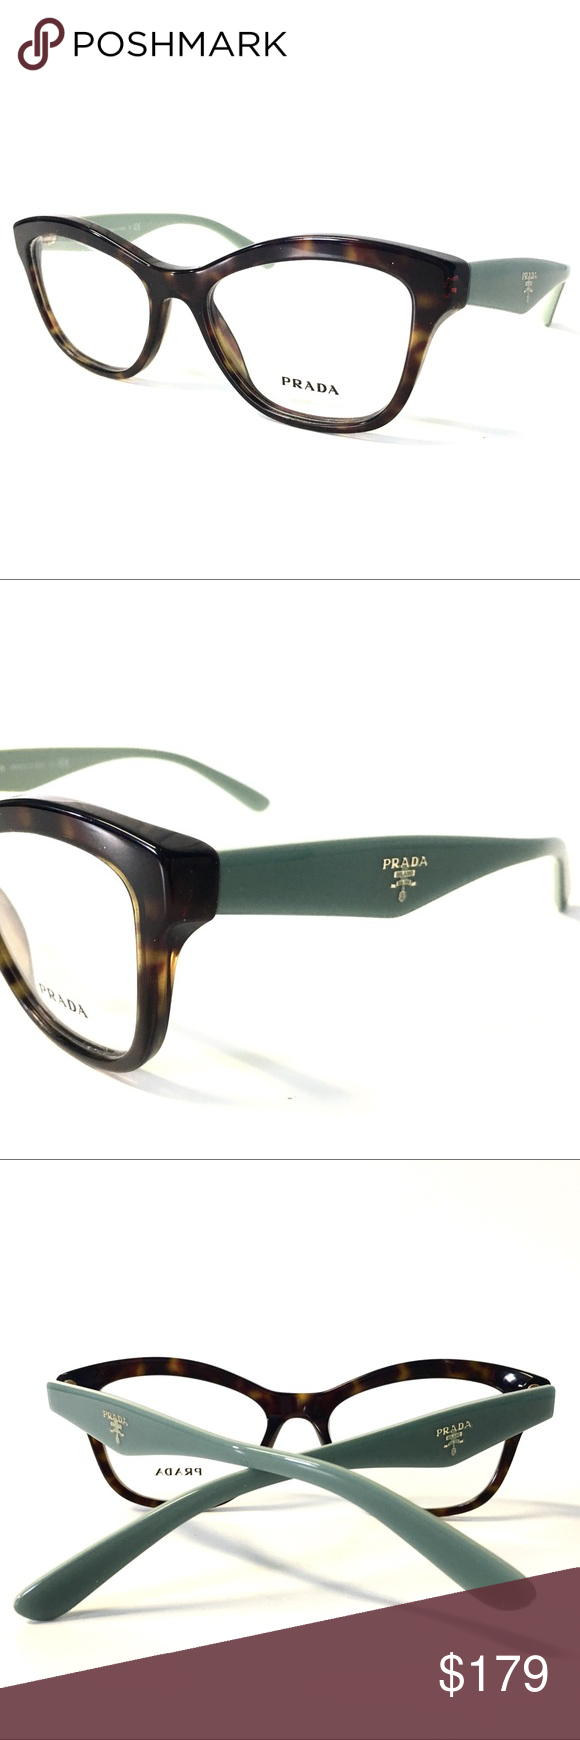 cd414e5b550b Prada Eyeglasses Tortoise Mint Green Cat Eye NEW Prada Eyeglasses Tortoise Mint  Green Cat Eye NEW